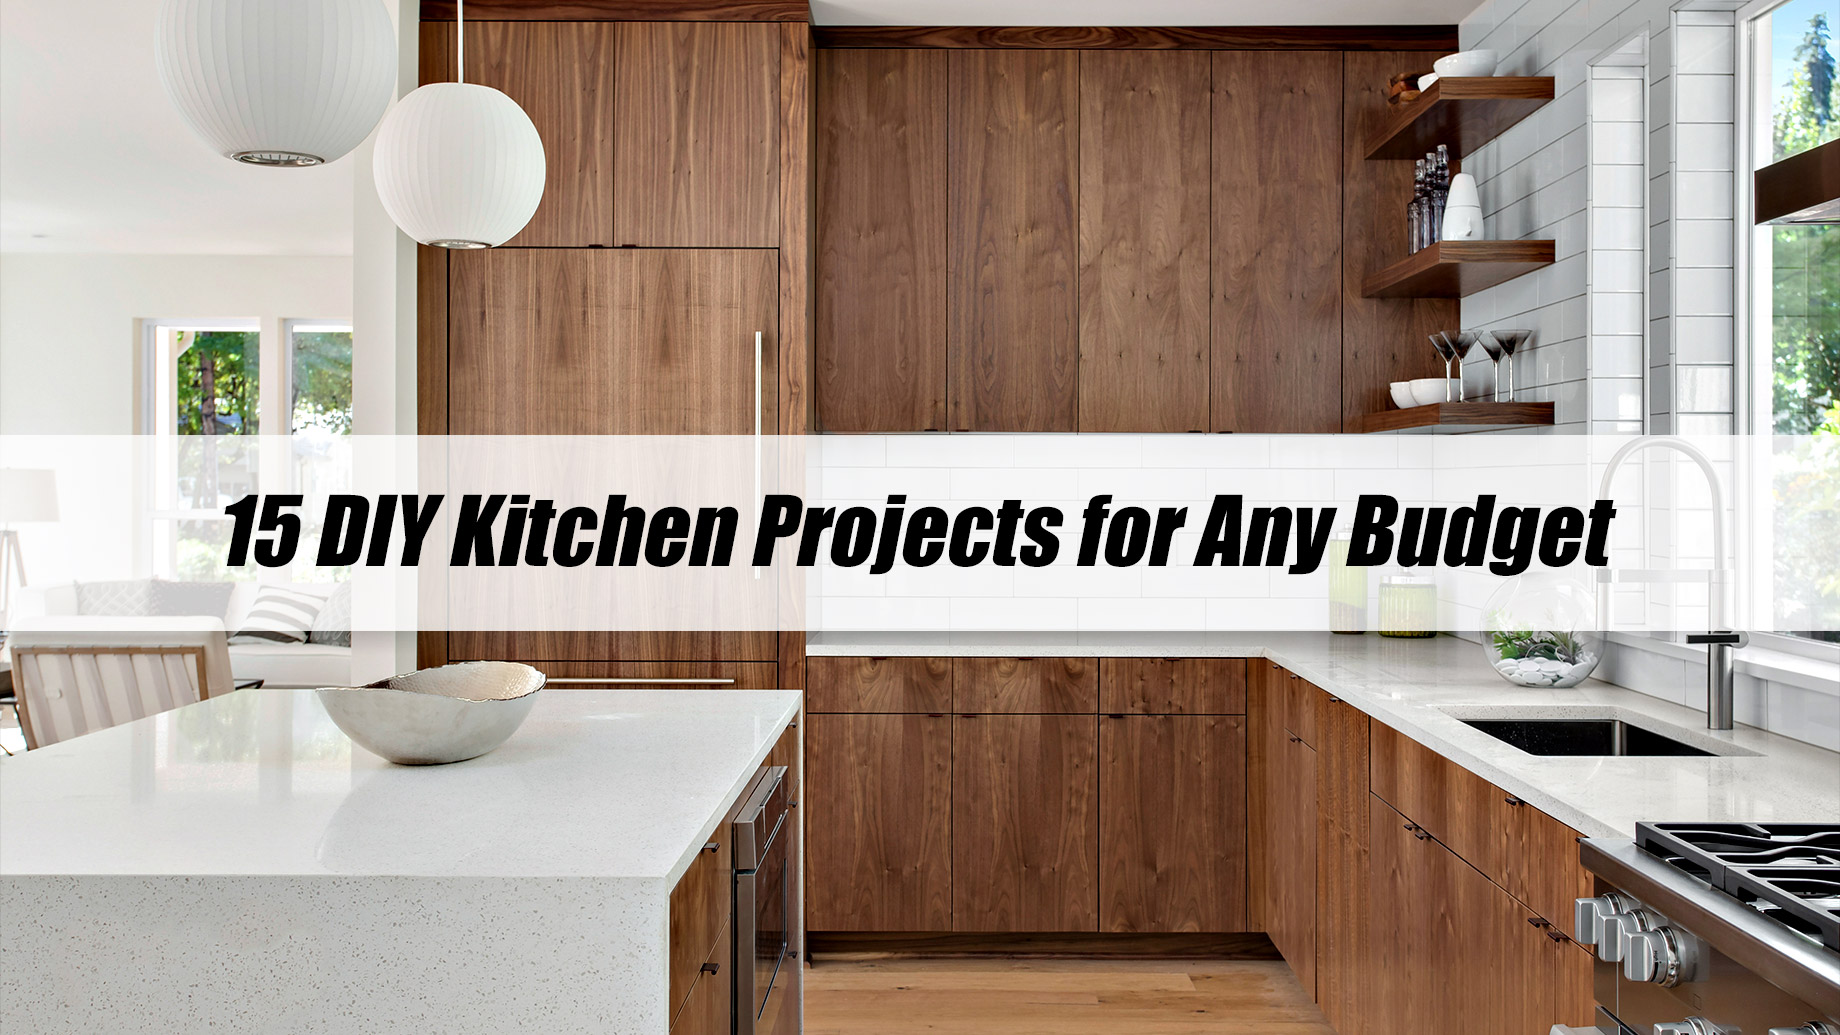 15 DIY Kitchen Projects for Any Budget